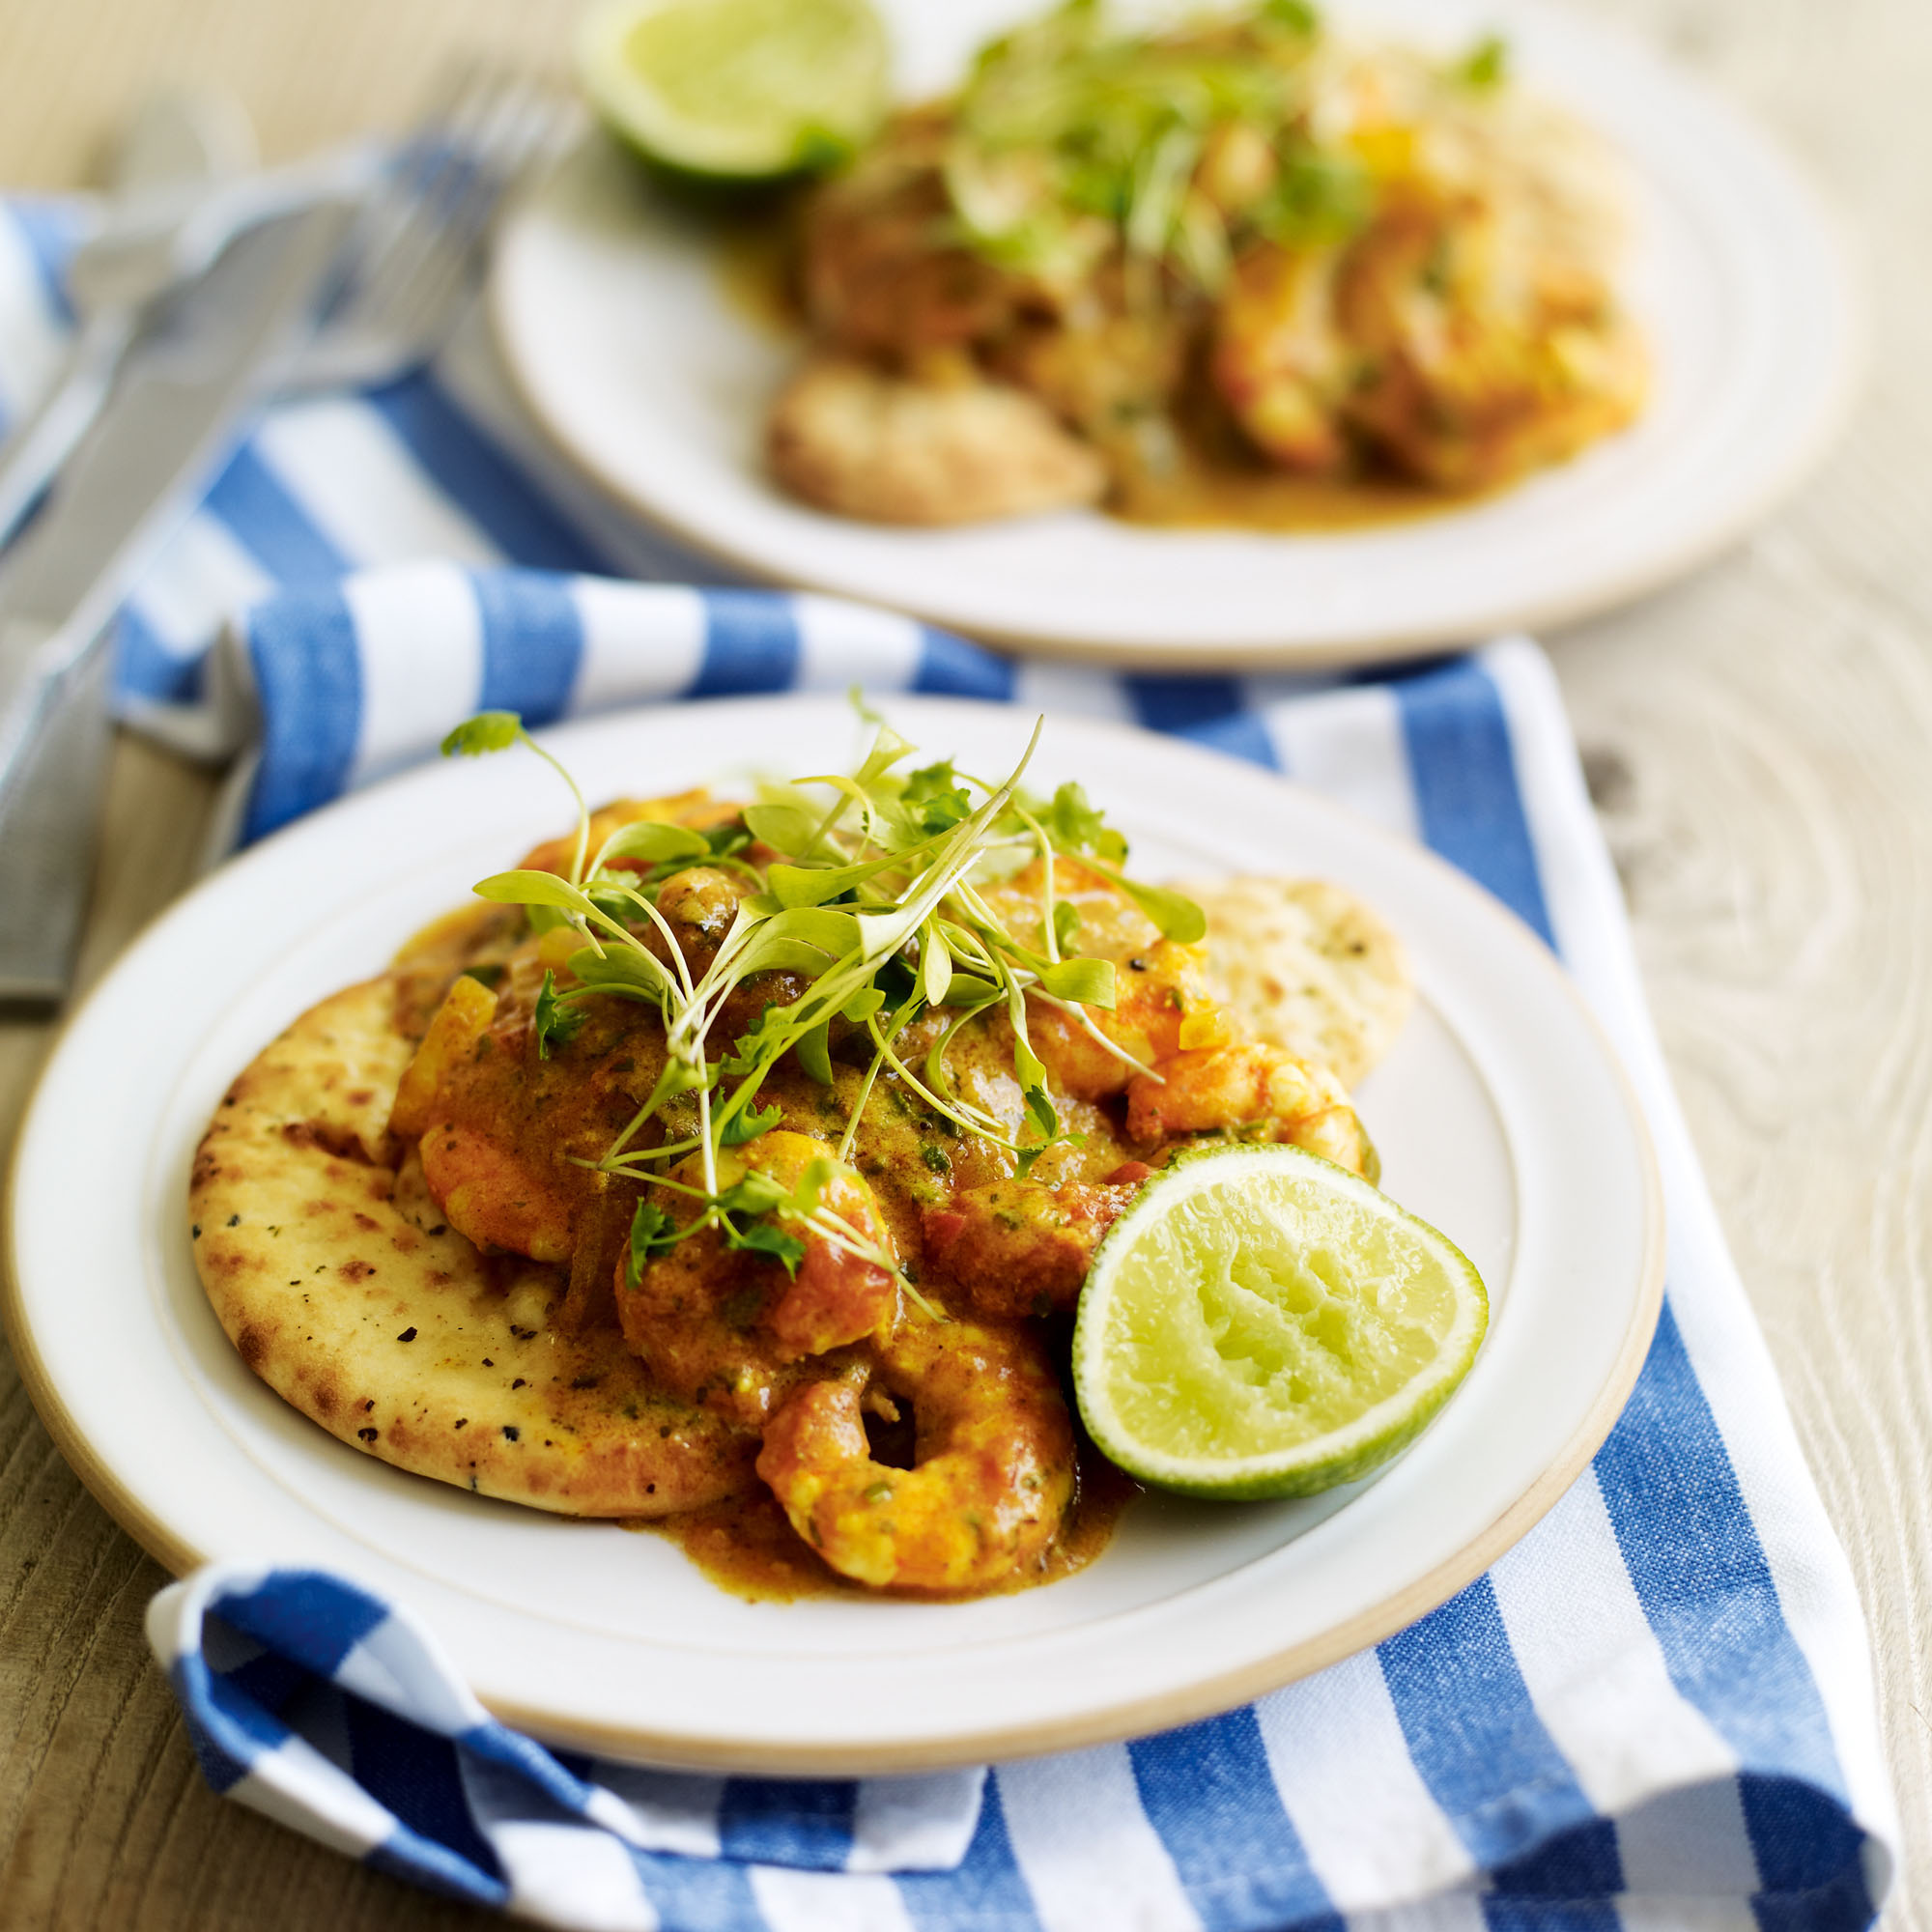 Prawn And Coconut Balti Curry With Naan Bread